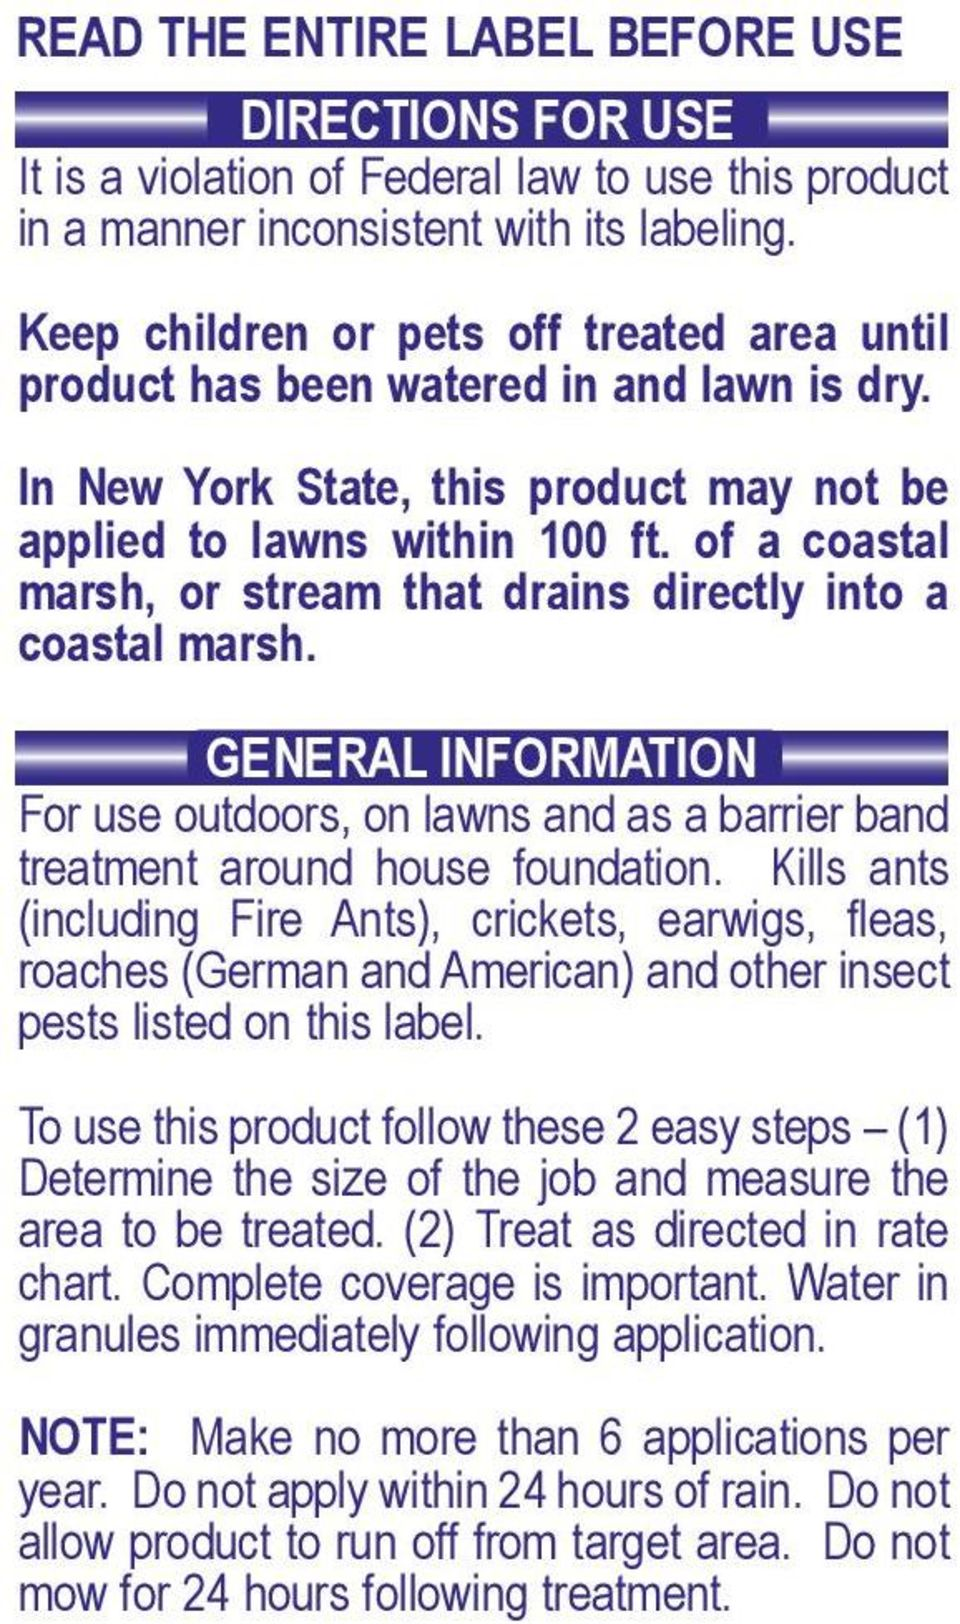 of a coastal marsh, or stream that drains directly into a coastal marsh. GENERAL INFORMATION For use outdoors, on lawns and as a barrier band treatment around house foundation.